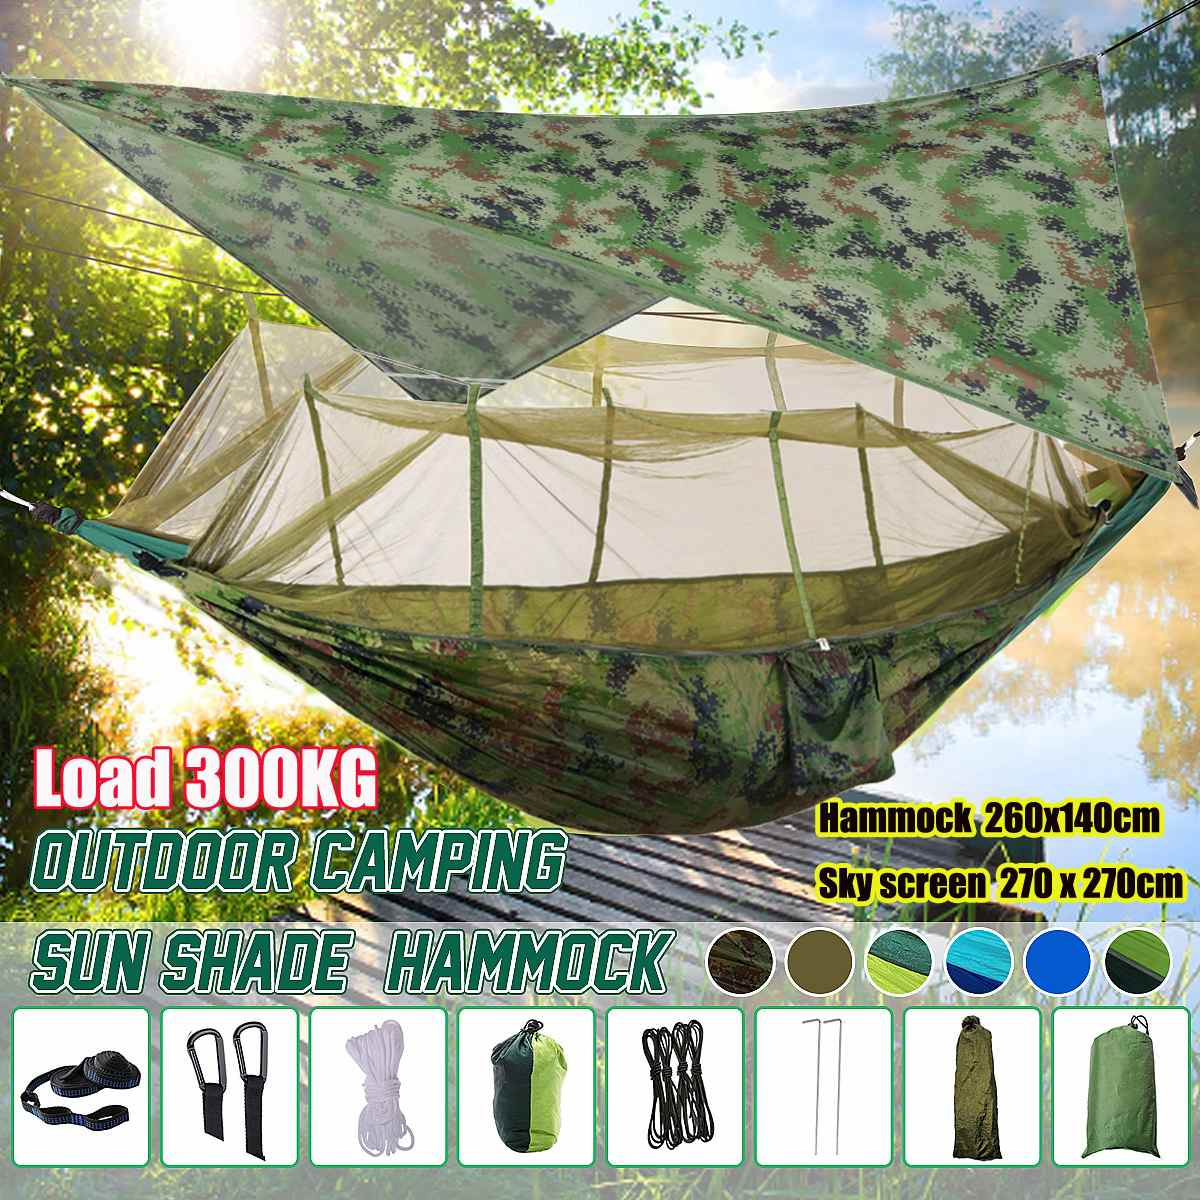 Outdoor Mosquito Net Parachute Hammock Camping Hanging Sleeping Bed Swing Portable Double Chair With Sun Shelter Garden Awning